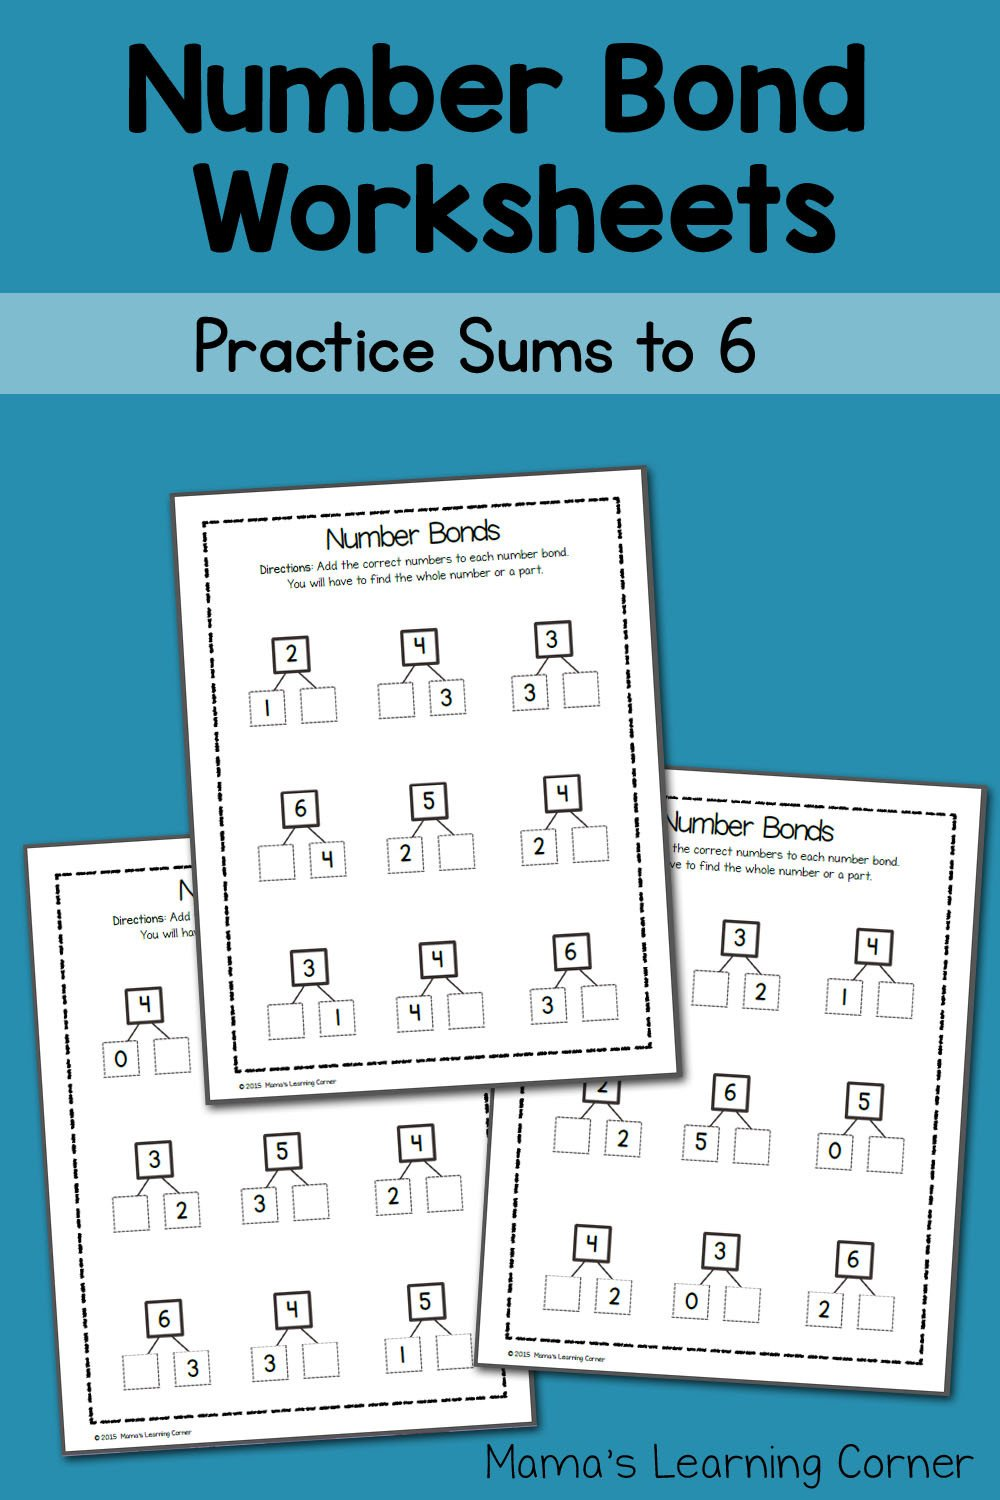 Number Bond Worksheets for Kindergarten Number Bond Worksheets Sums to 6 Mamas Learning Corner